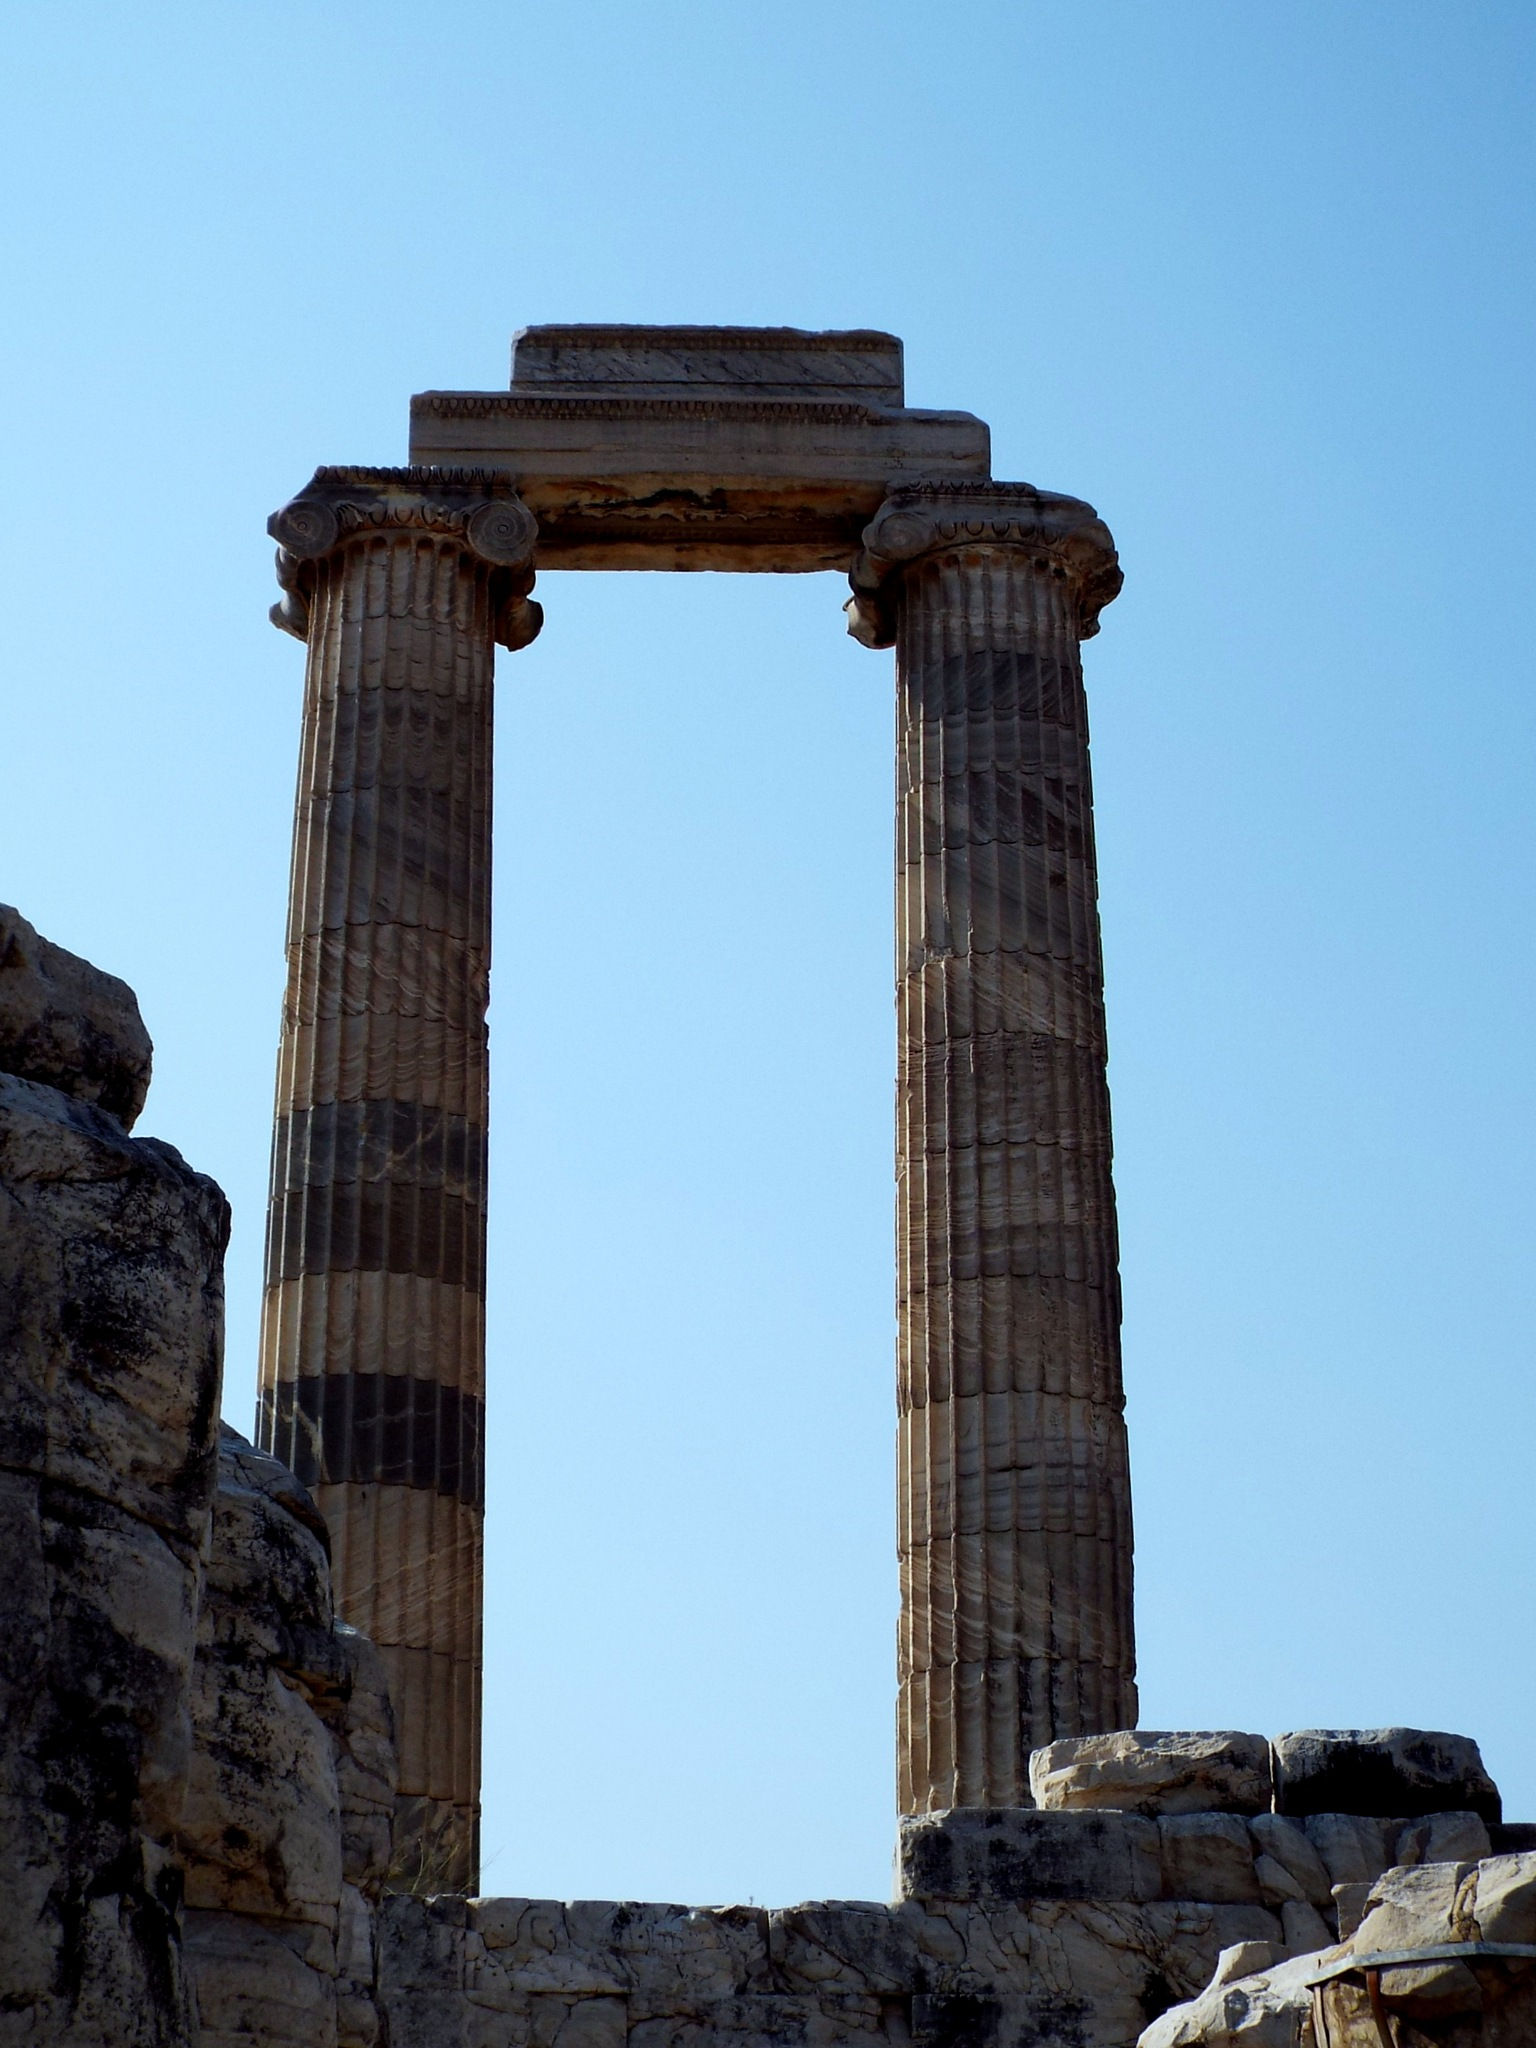 A VIEW FROM HISTORICAL APOLLON TEMPLE, DYDYMA by Akin Saner